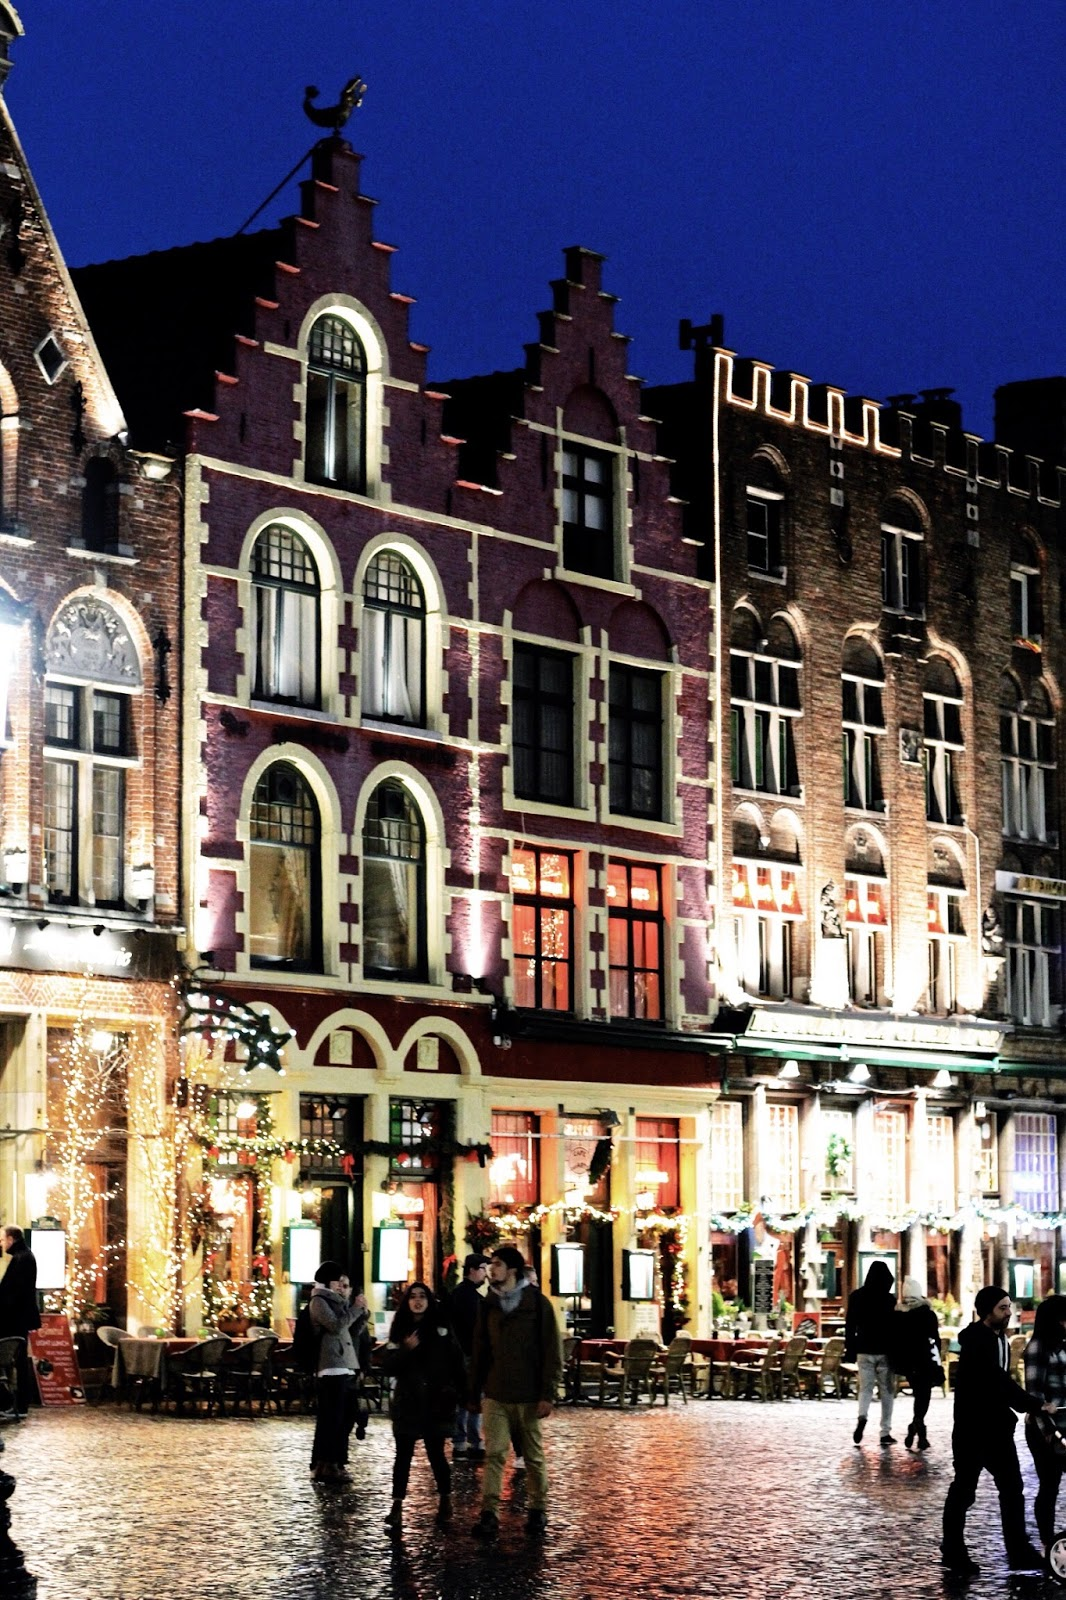 Medieval Architecture in Bruges at Christmas